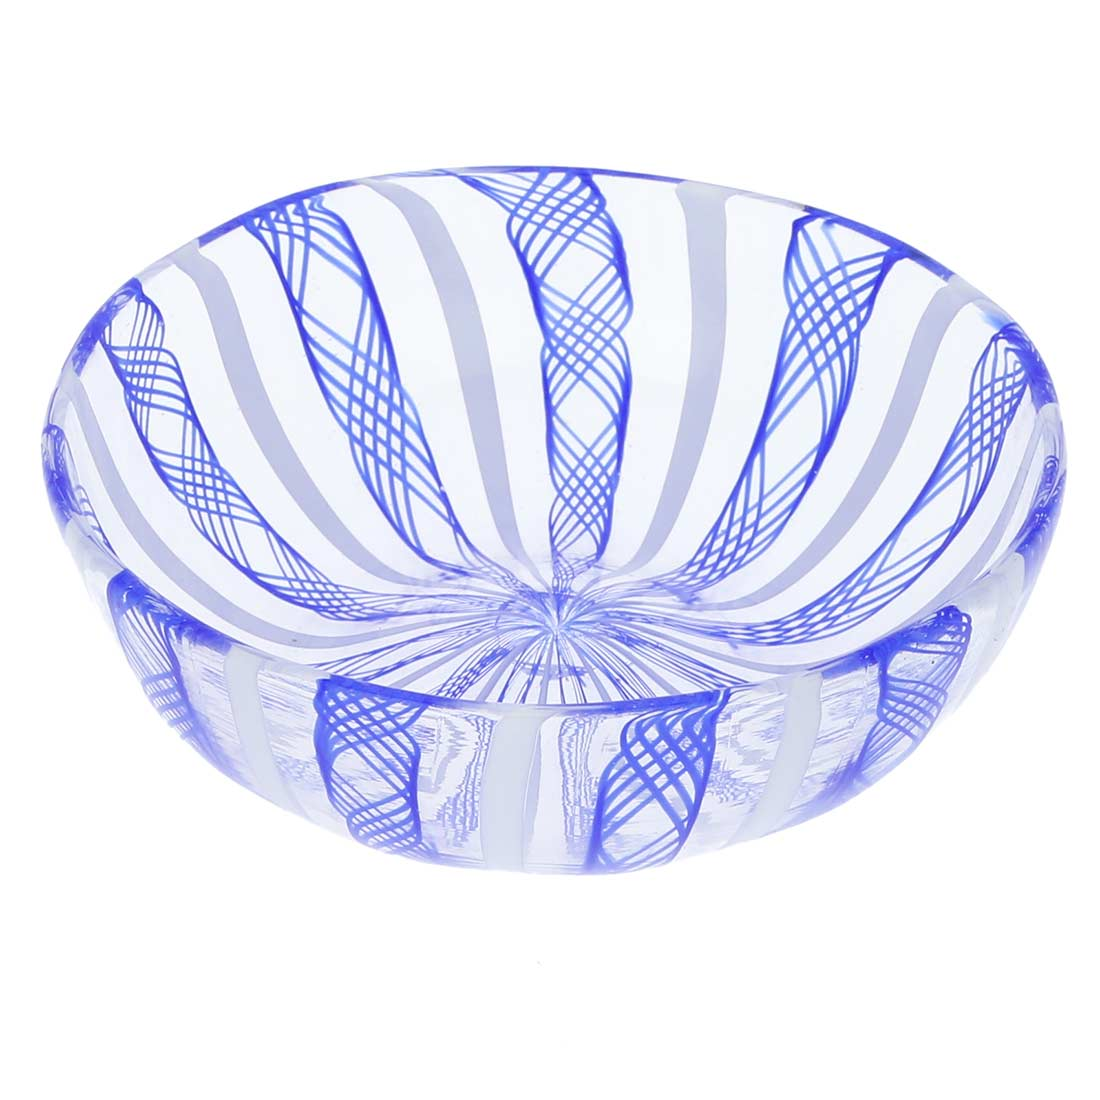 Murano Glass Filigrana Candy Dish